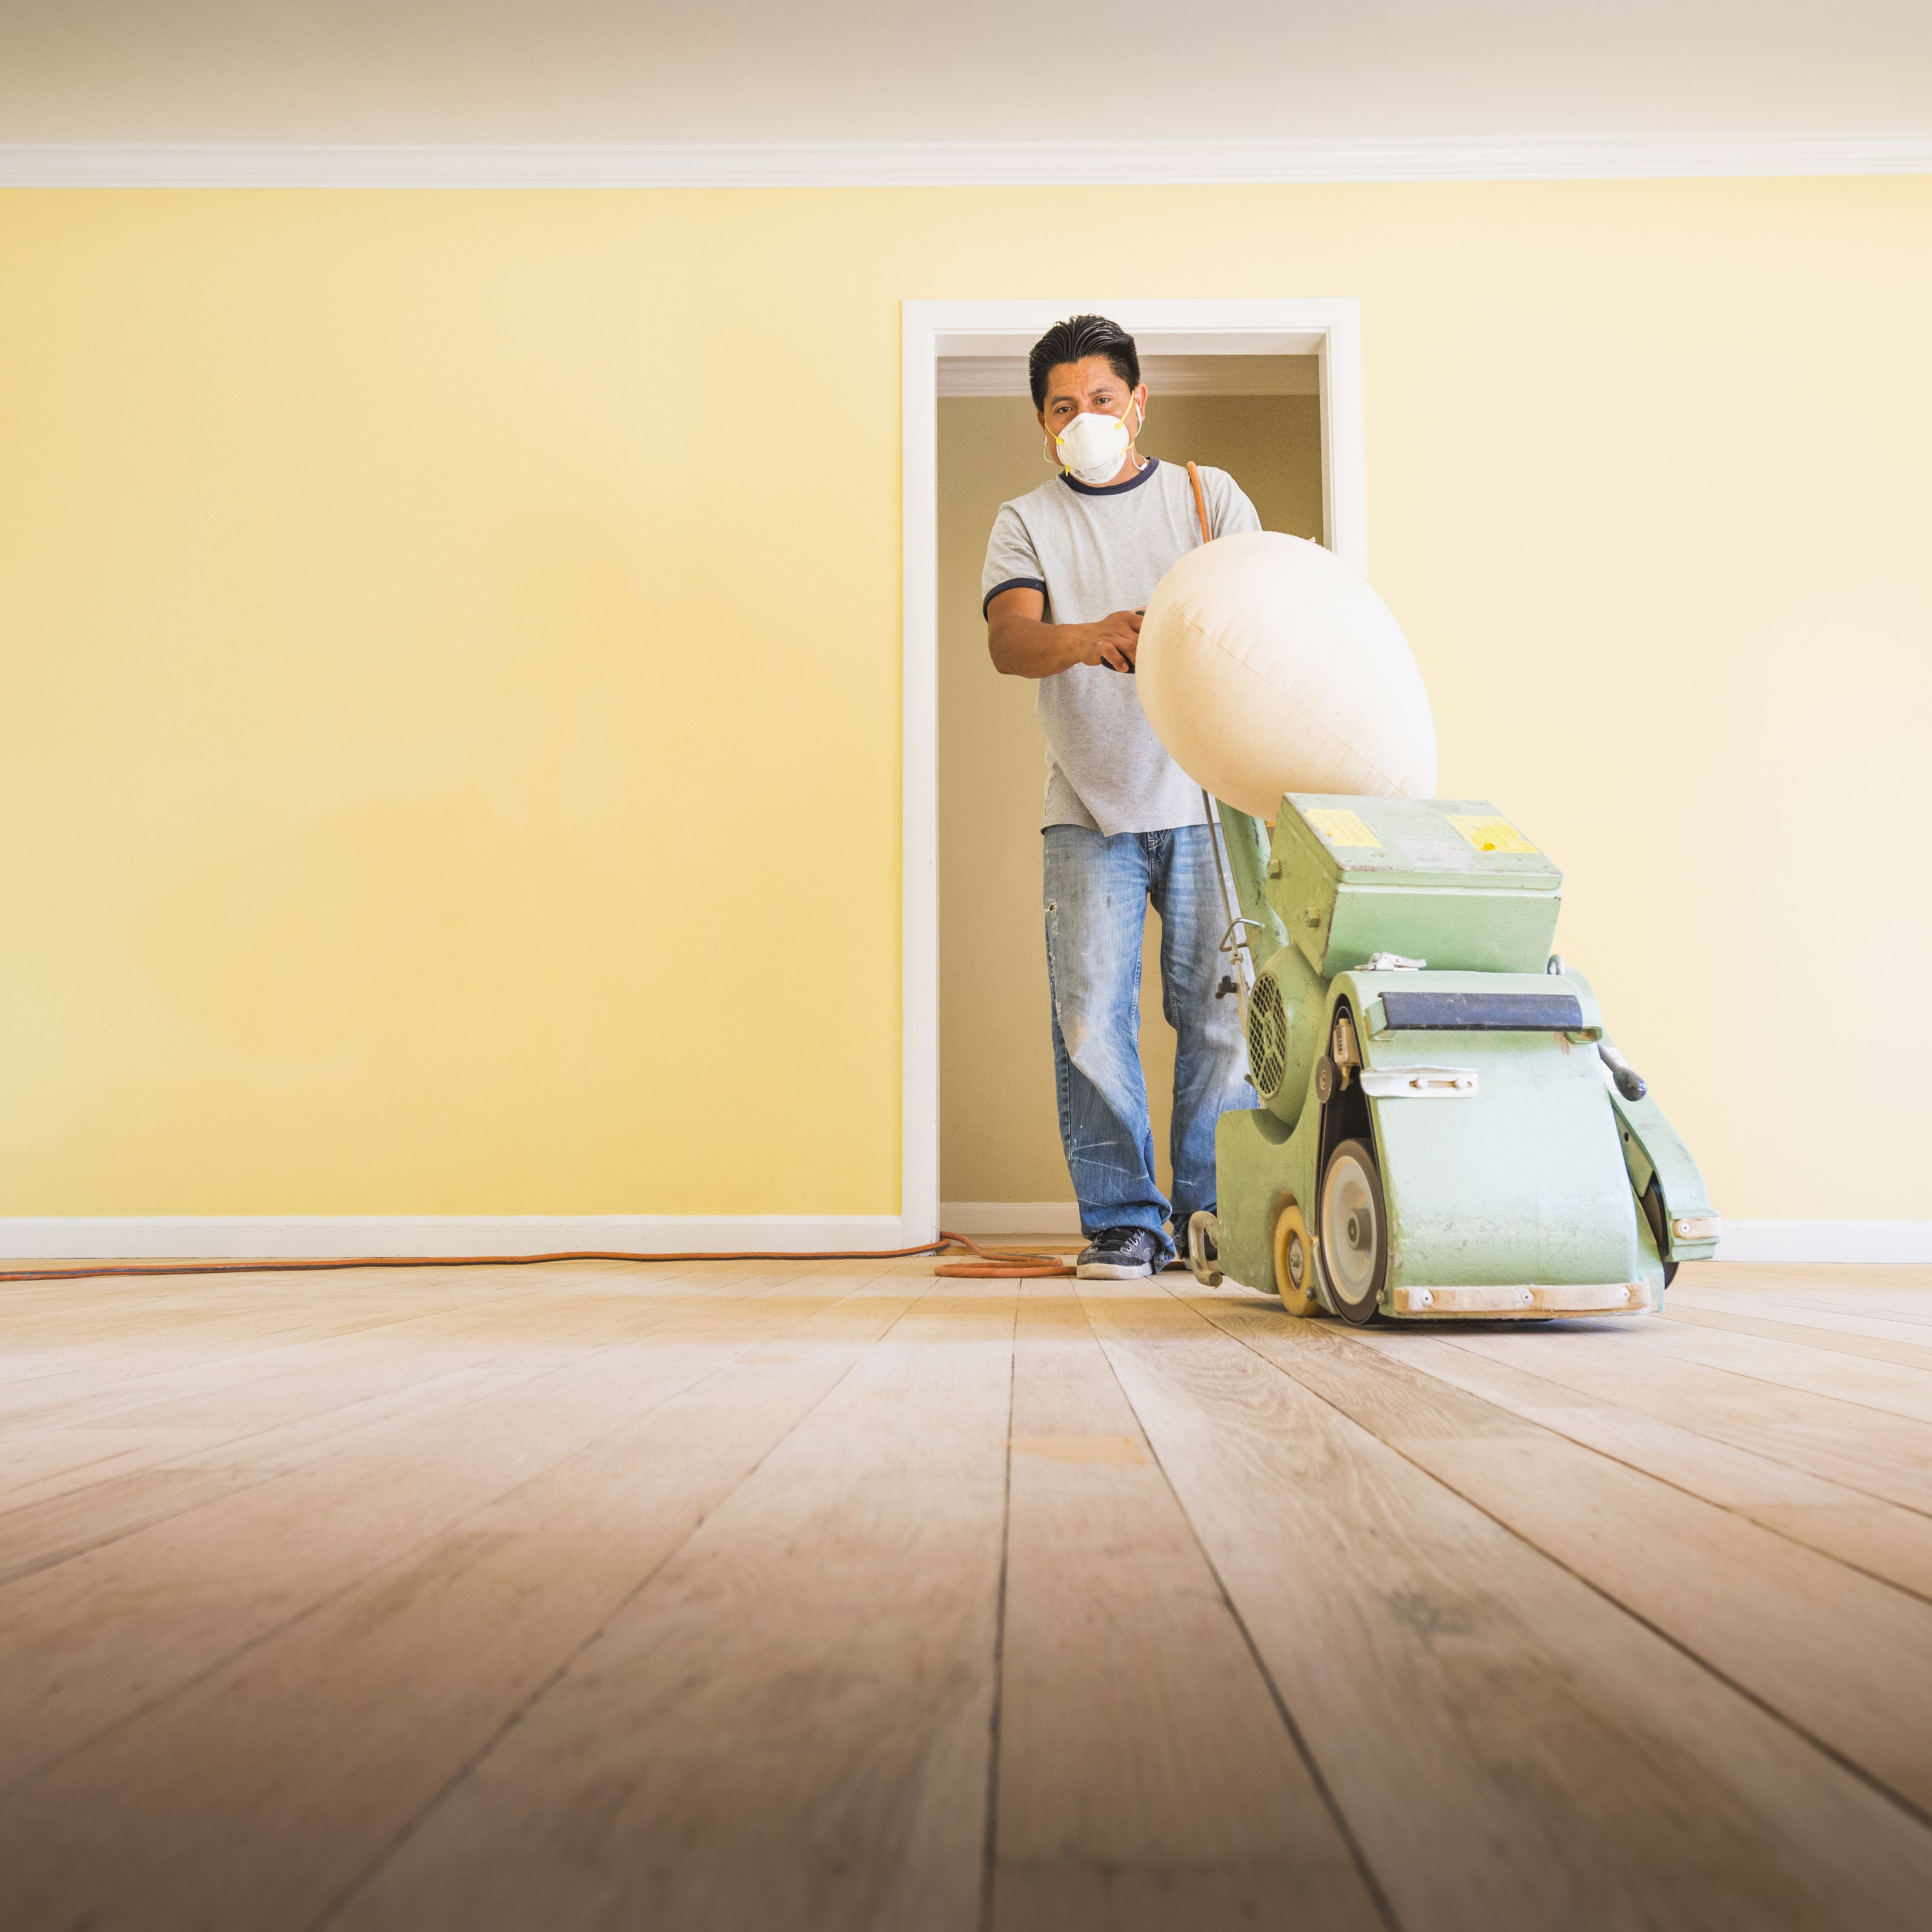 should you paint walls before or after refinishing floors?